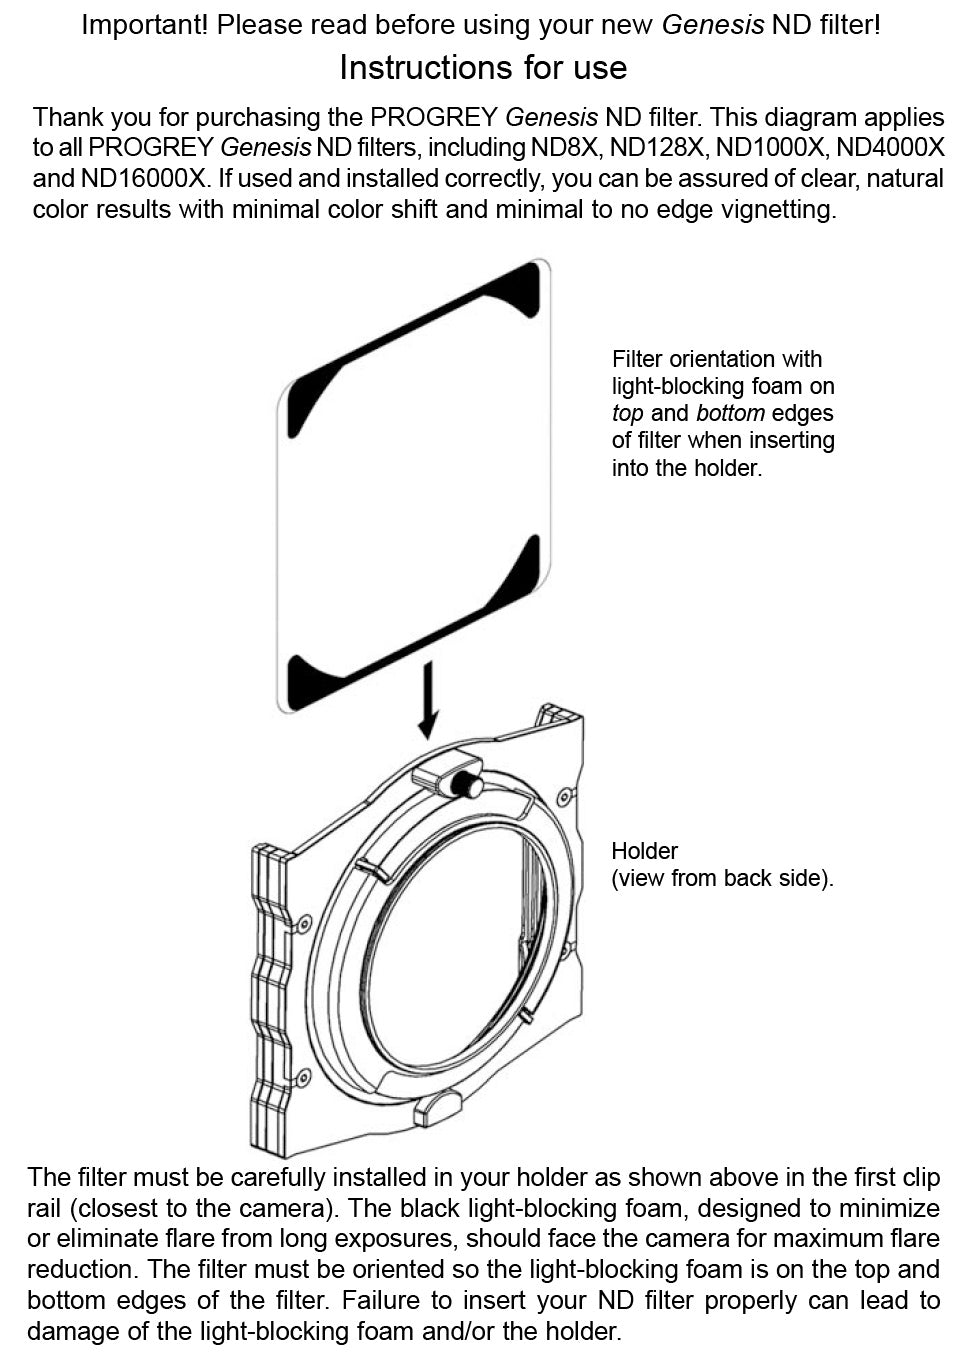 Genesis neutral density filter installation instructions